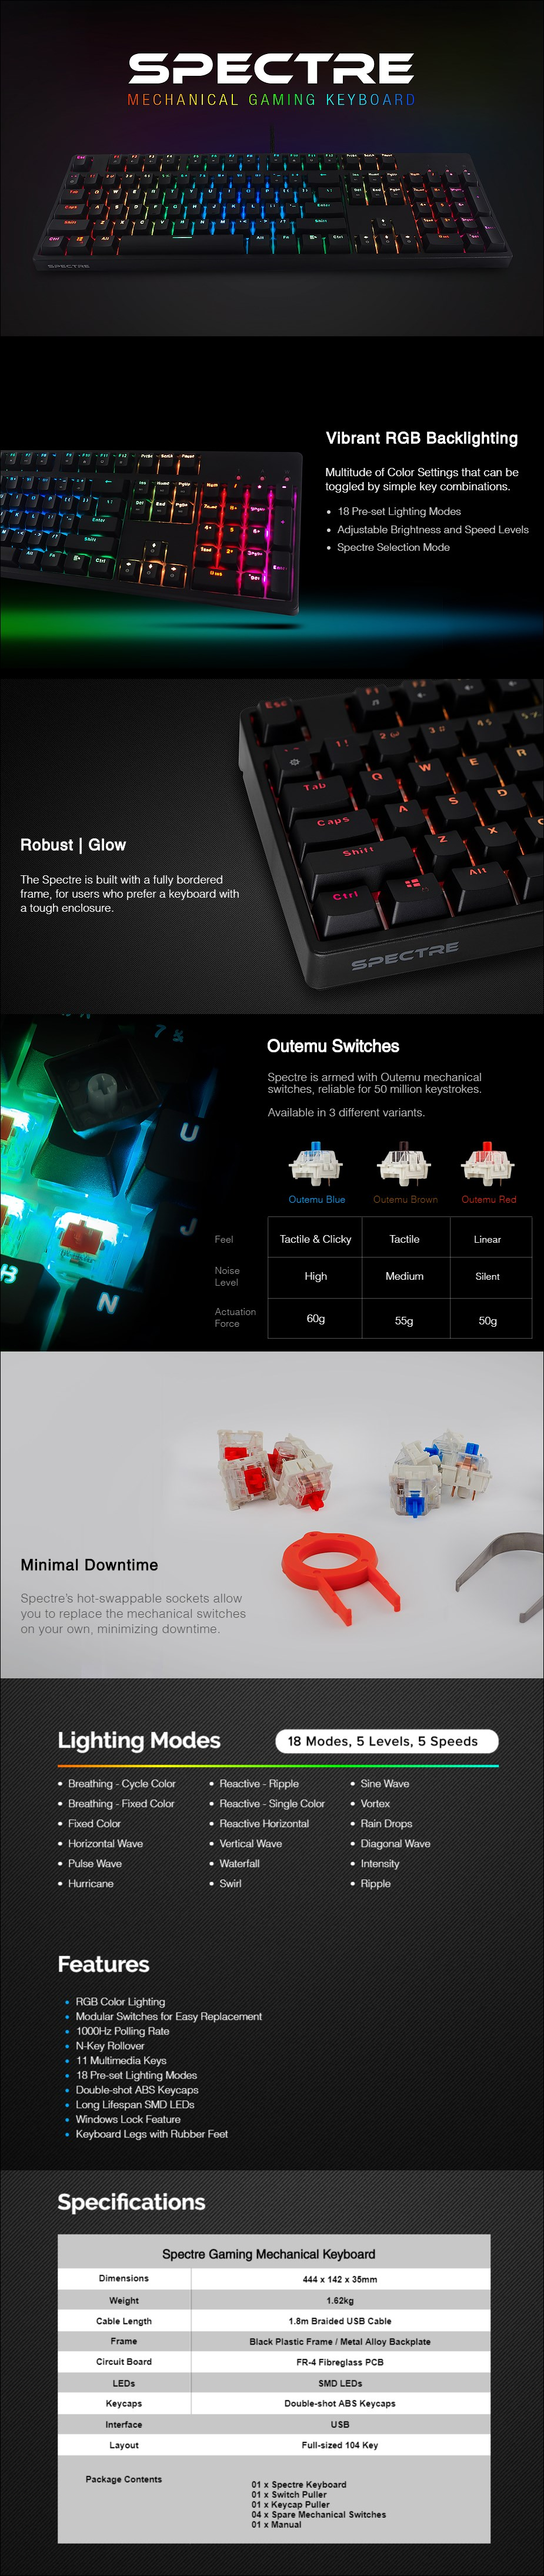 Tecware Spectre RGB Mechanical Gaming Keyboard - Outemu Blue - Desktop Overview 1